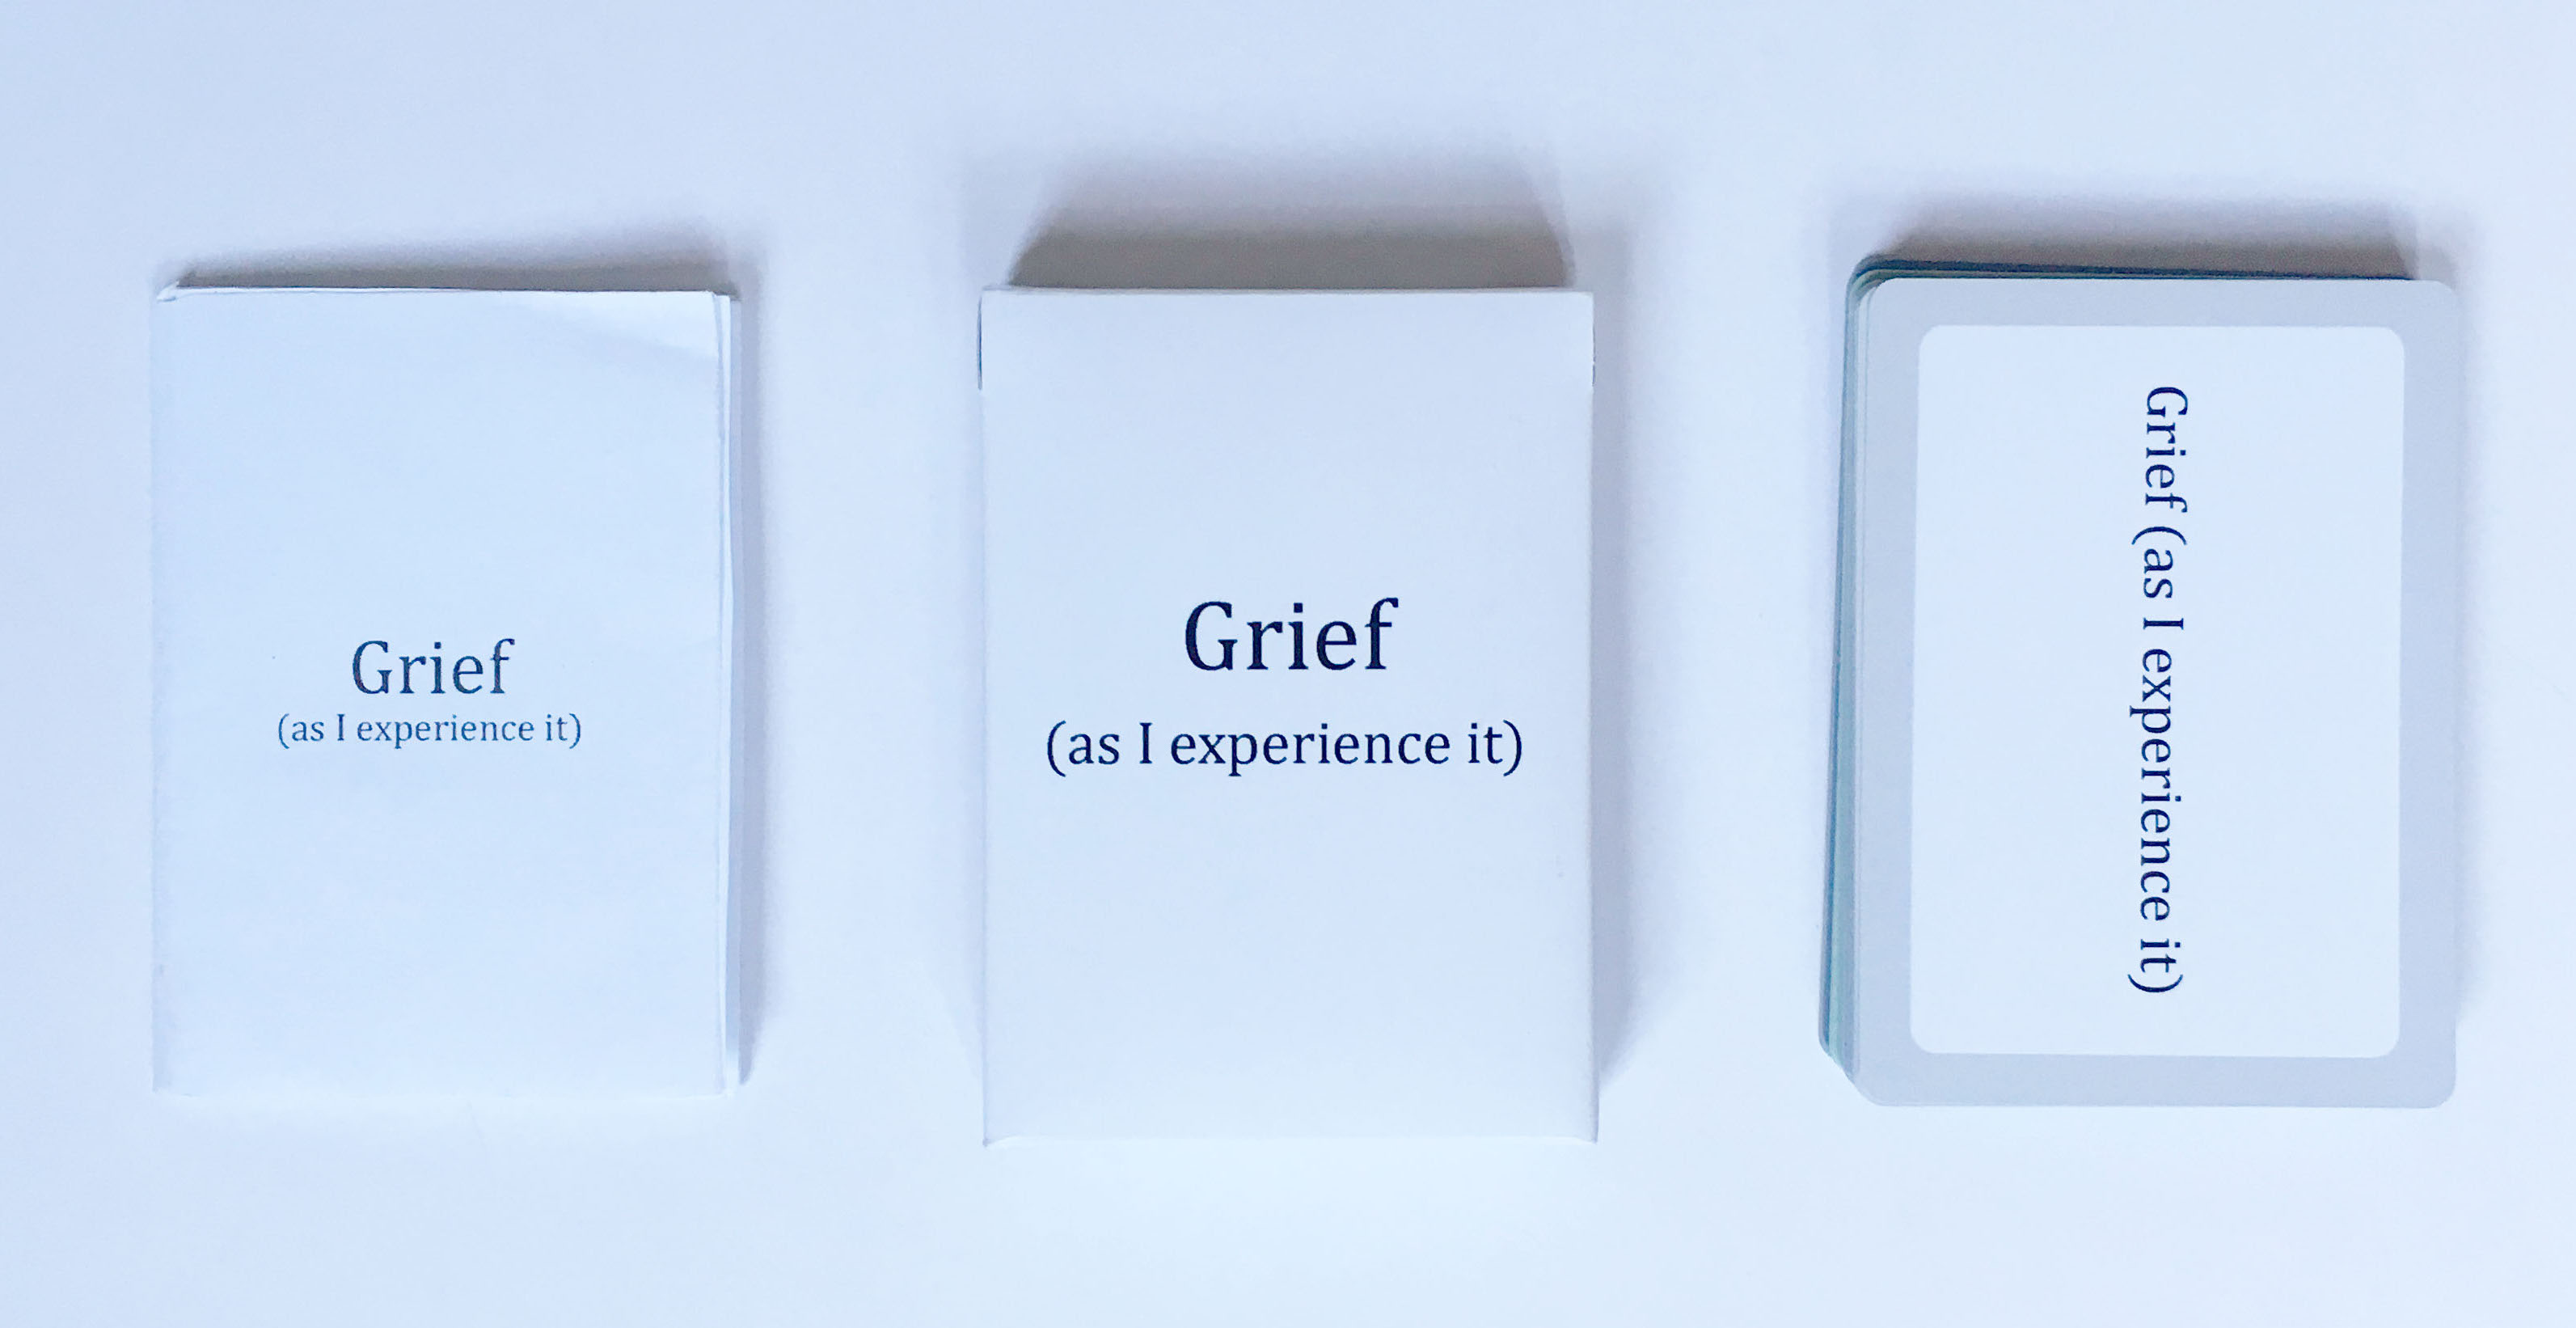 Grief (as I experience it)